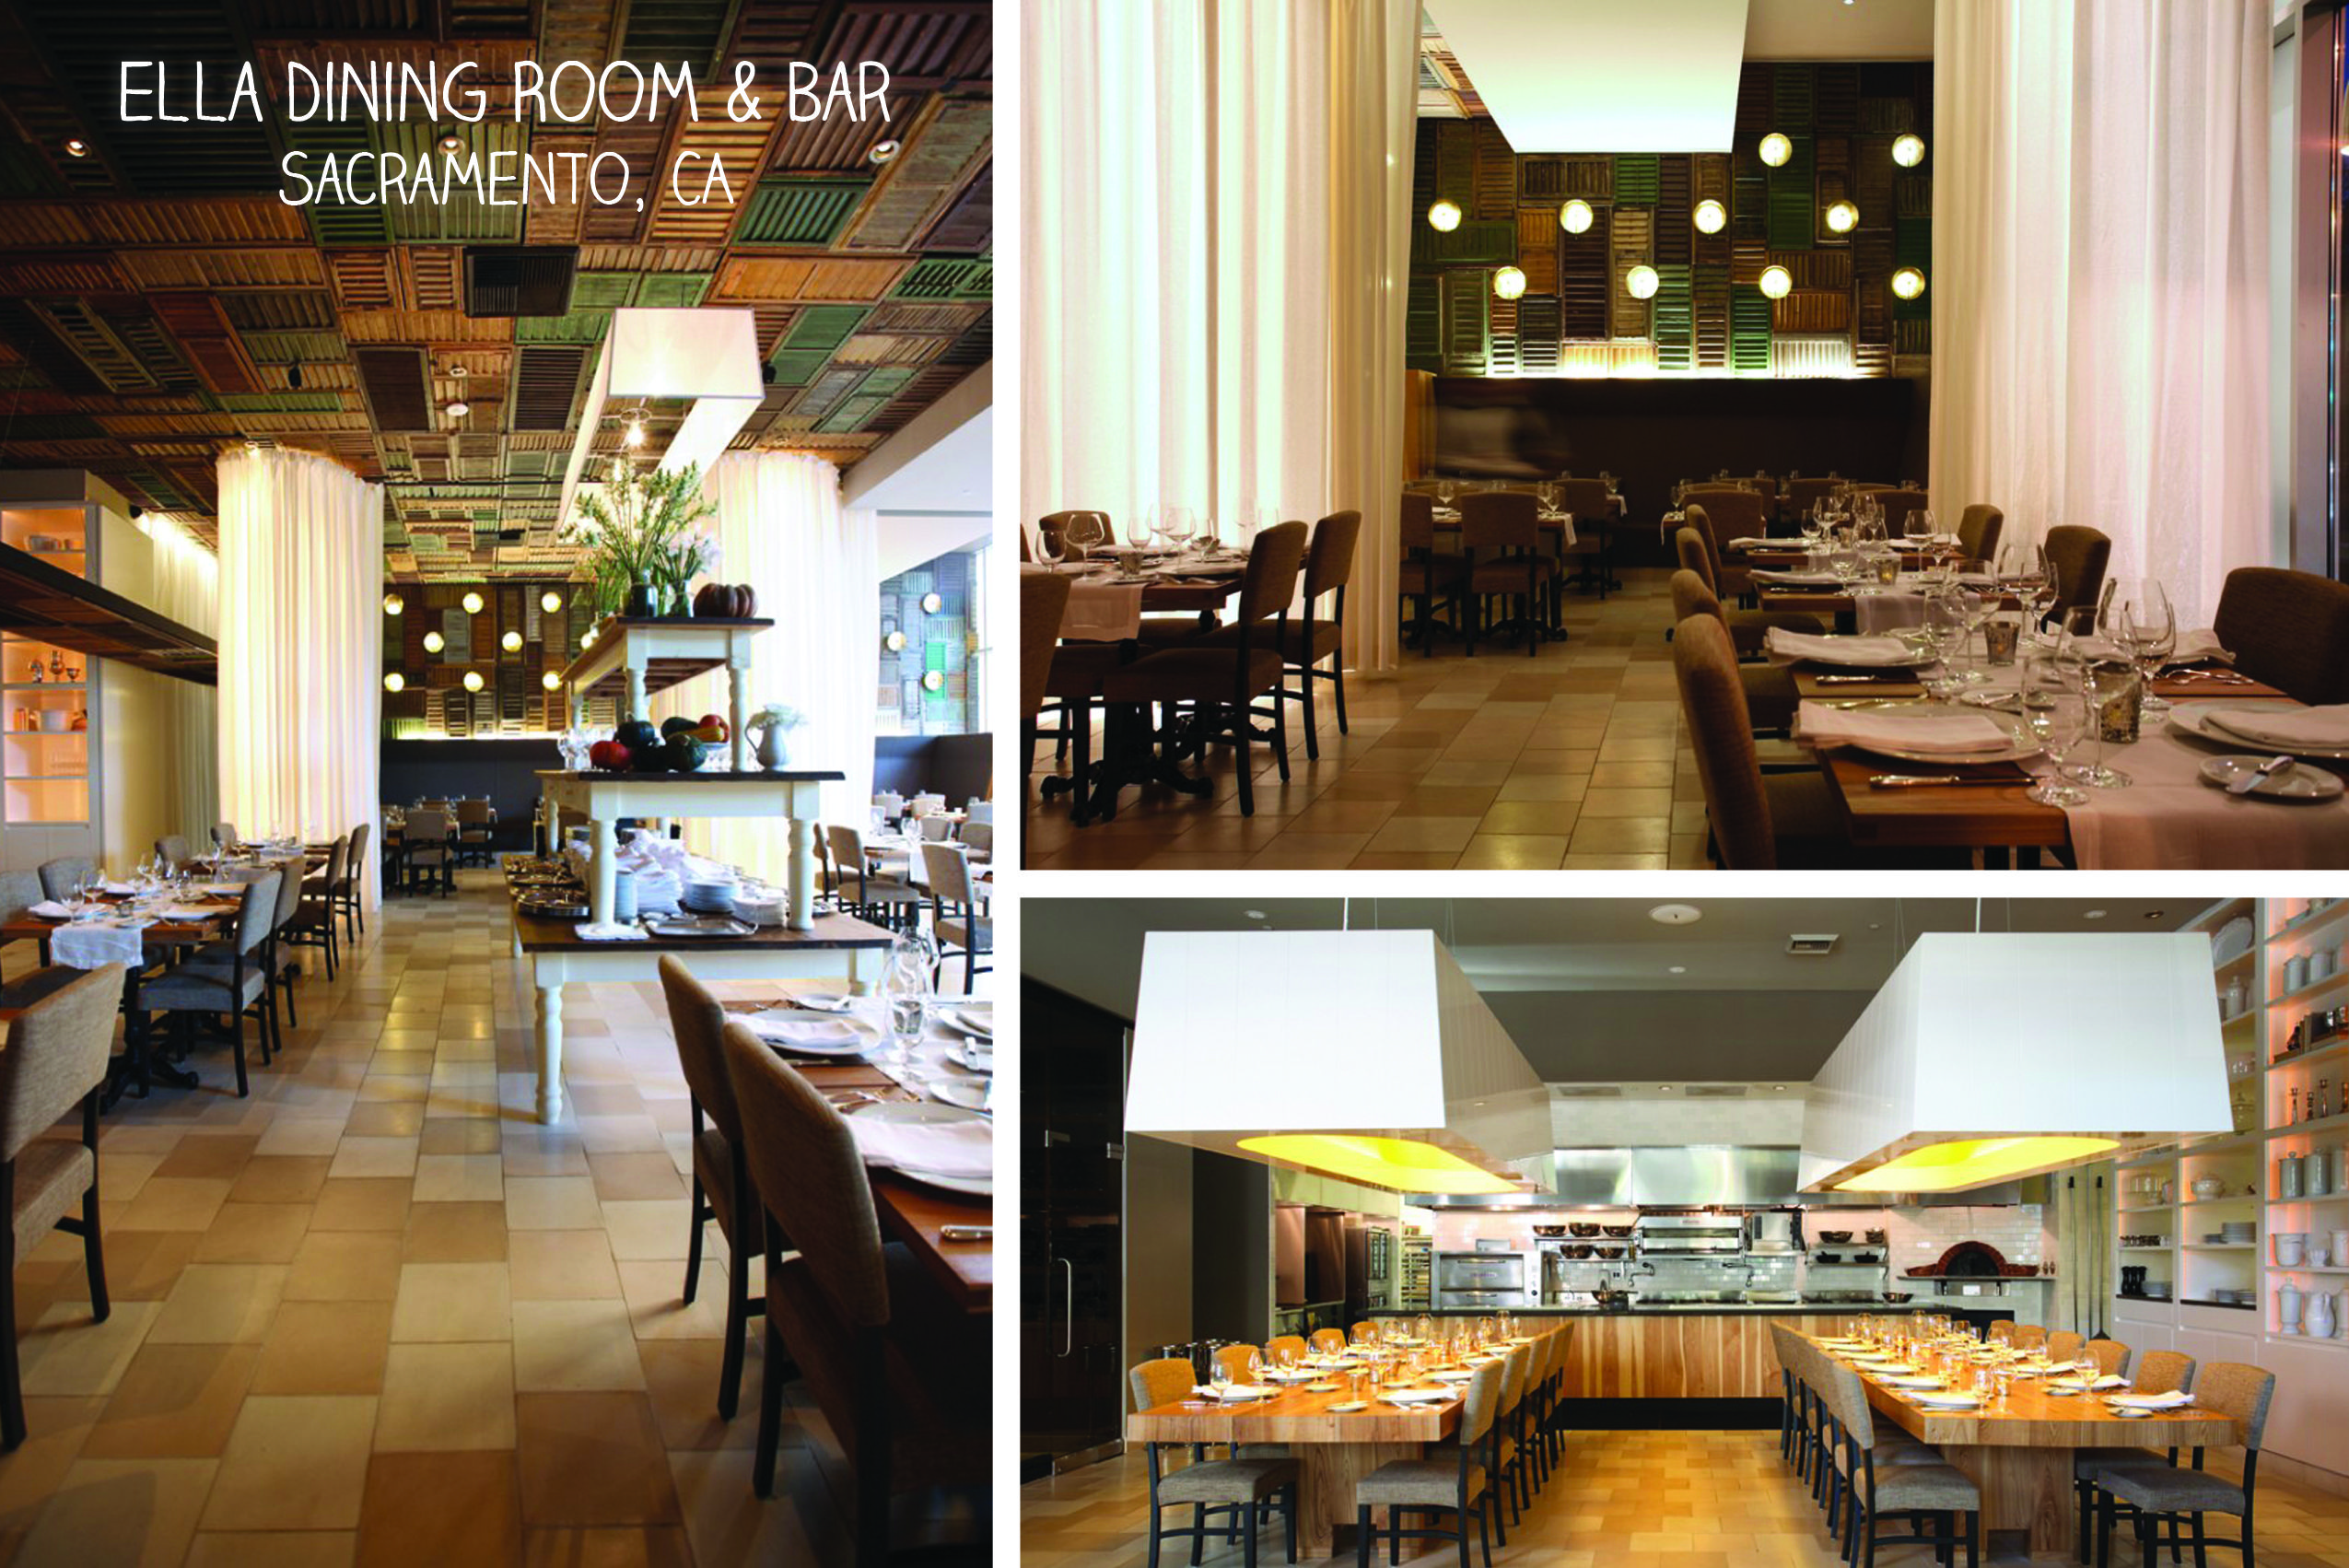 Ella Dining Room Bar Sacramento CA UXUS Beautifully Intertwines The Old And